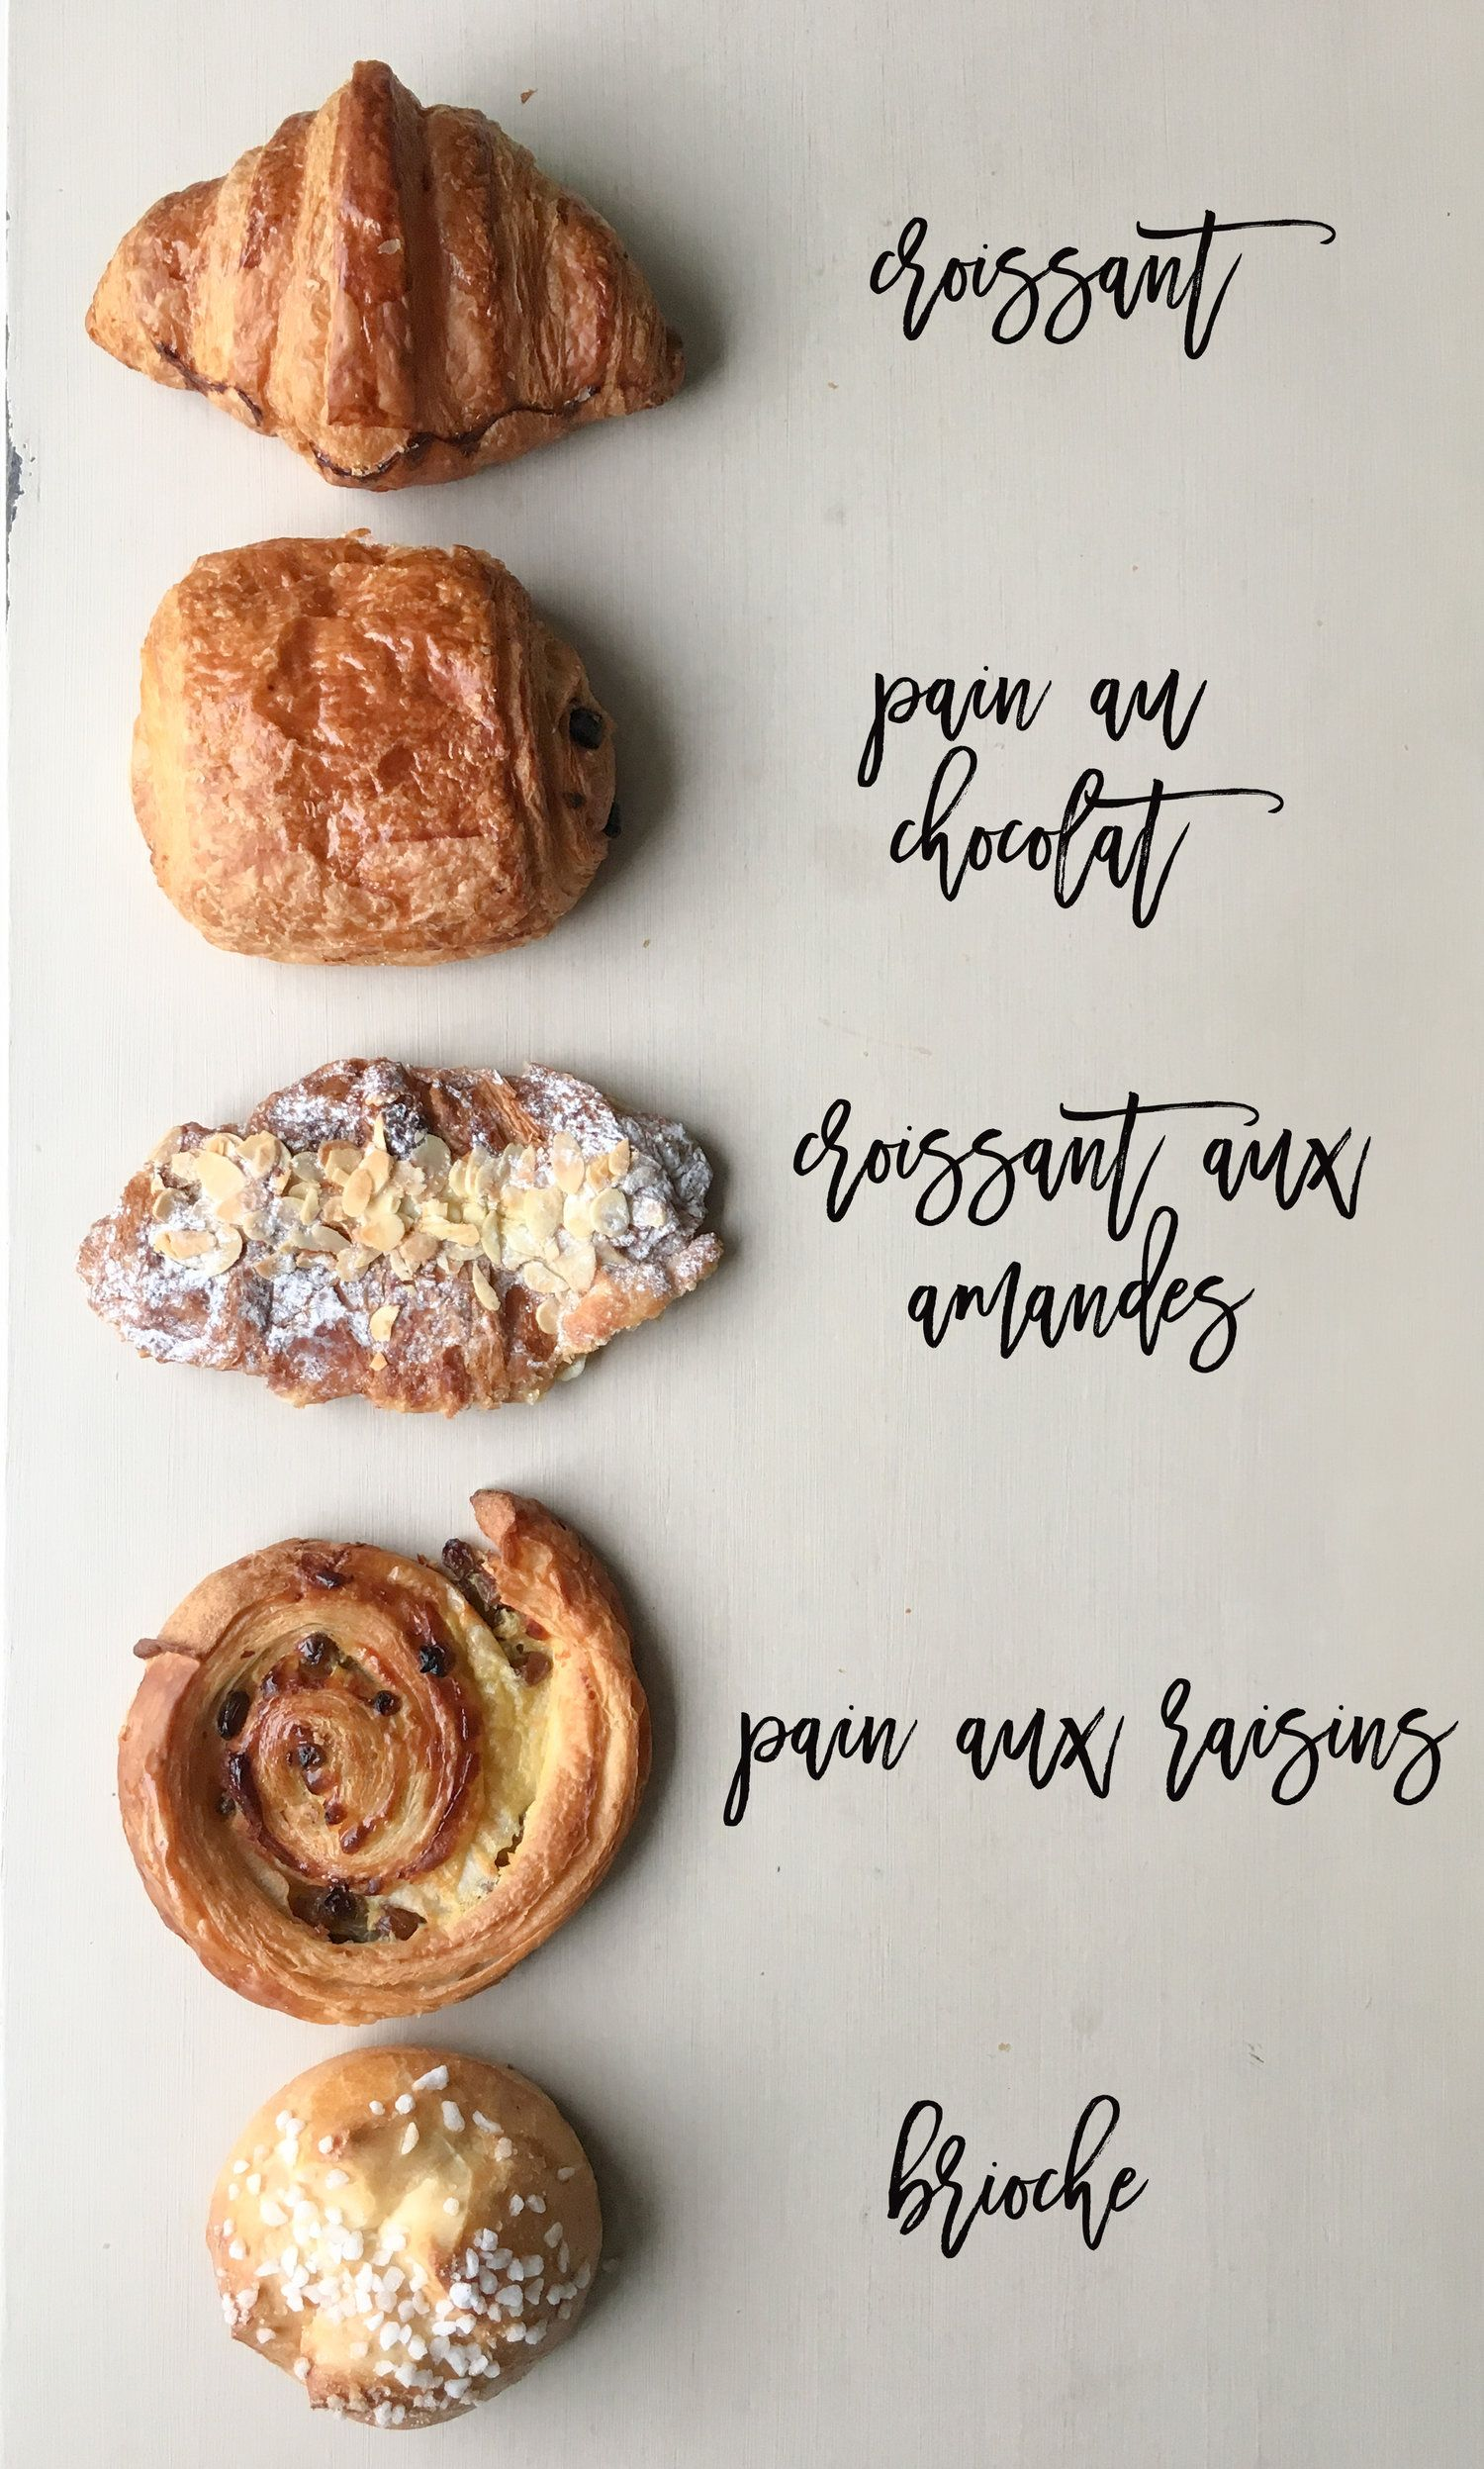 Paris  5 Ways to order a Pastry in French  ccfef5c912